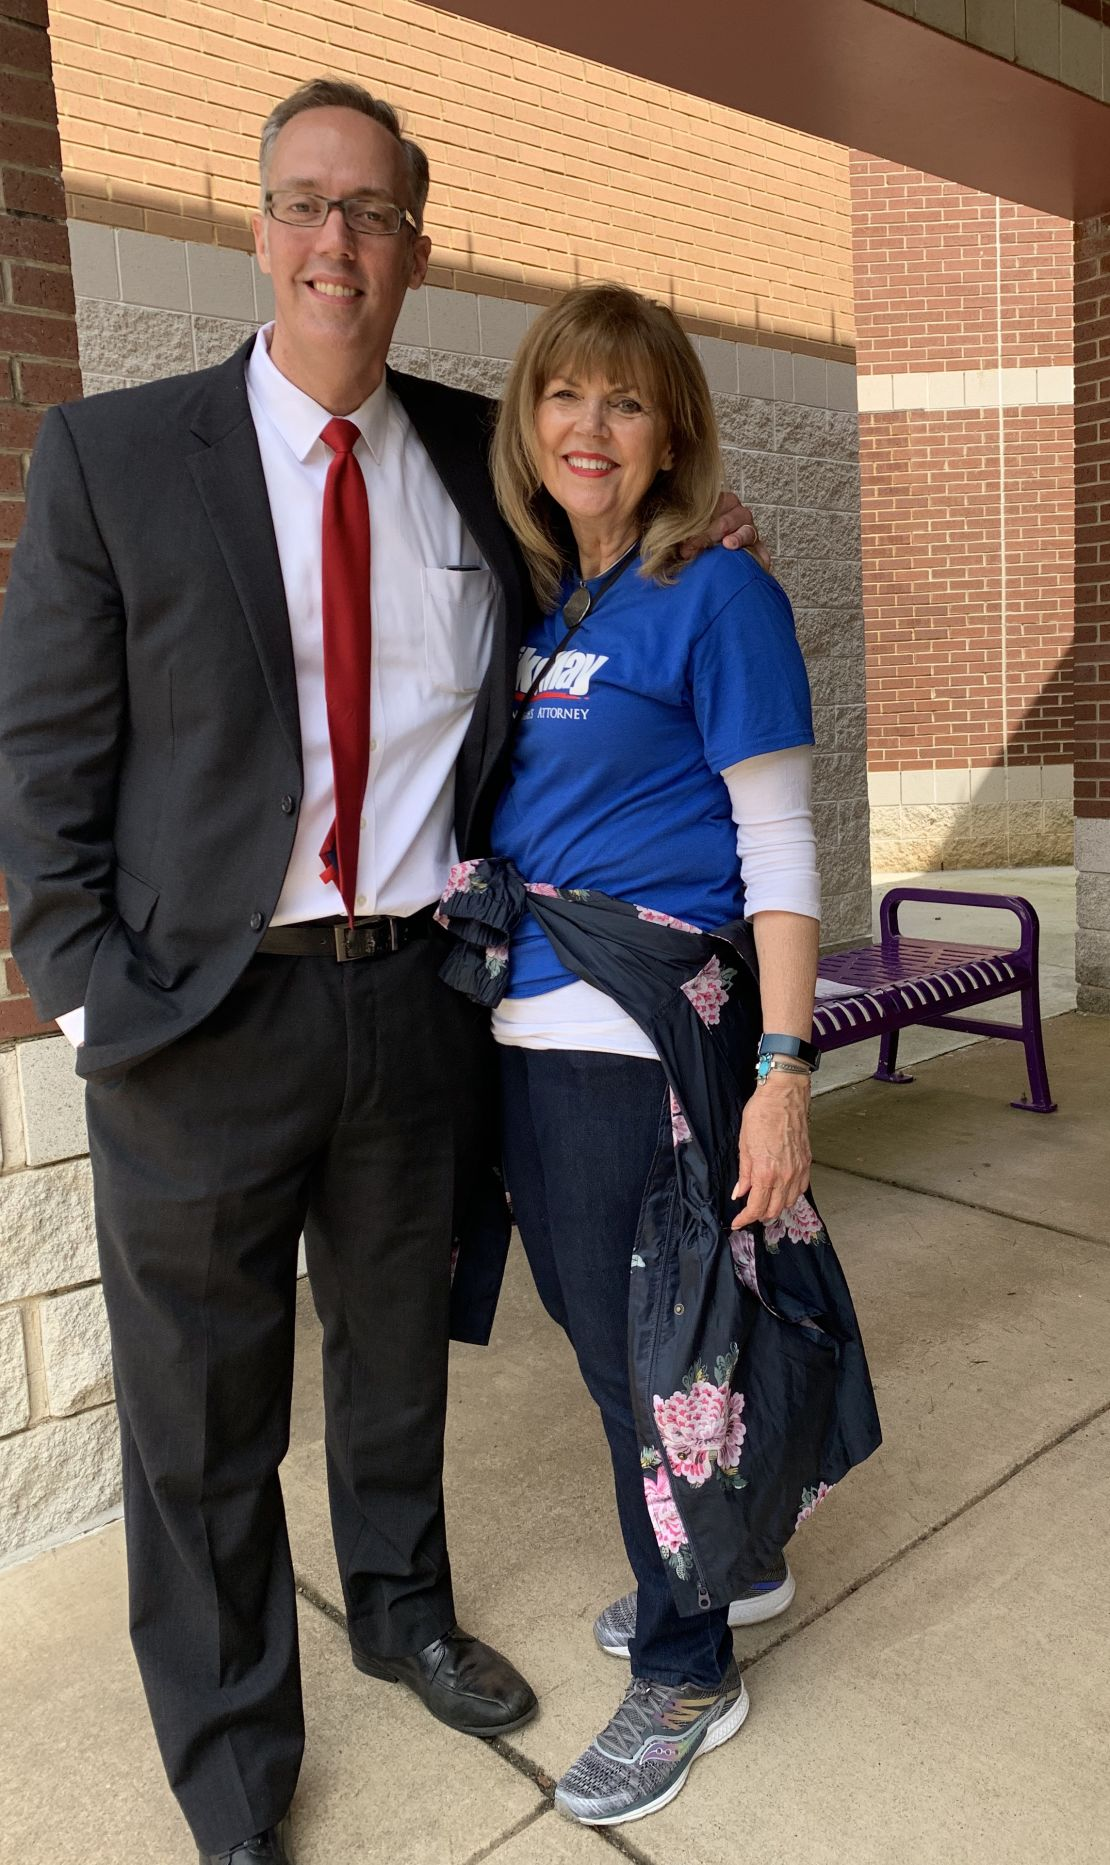 Mike May with mom May 4, 2019 GOP firehouse primary